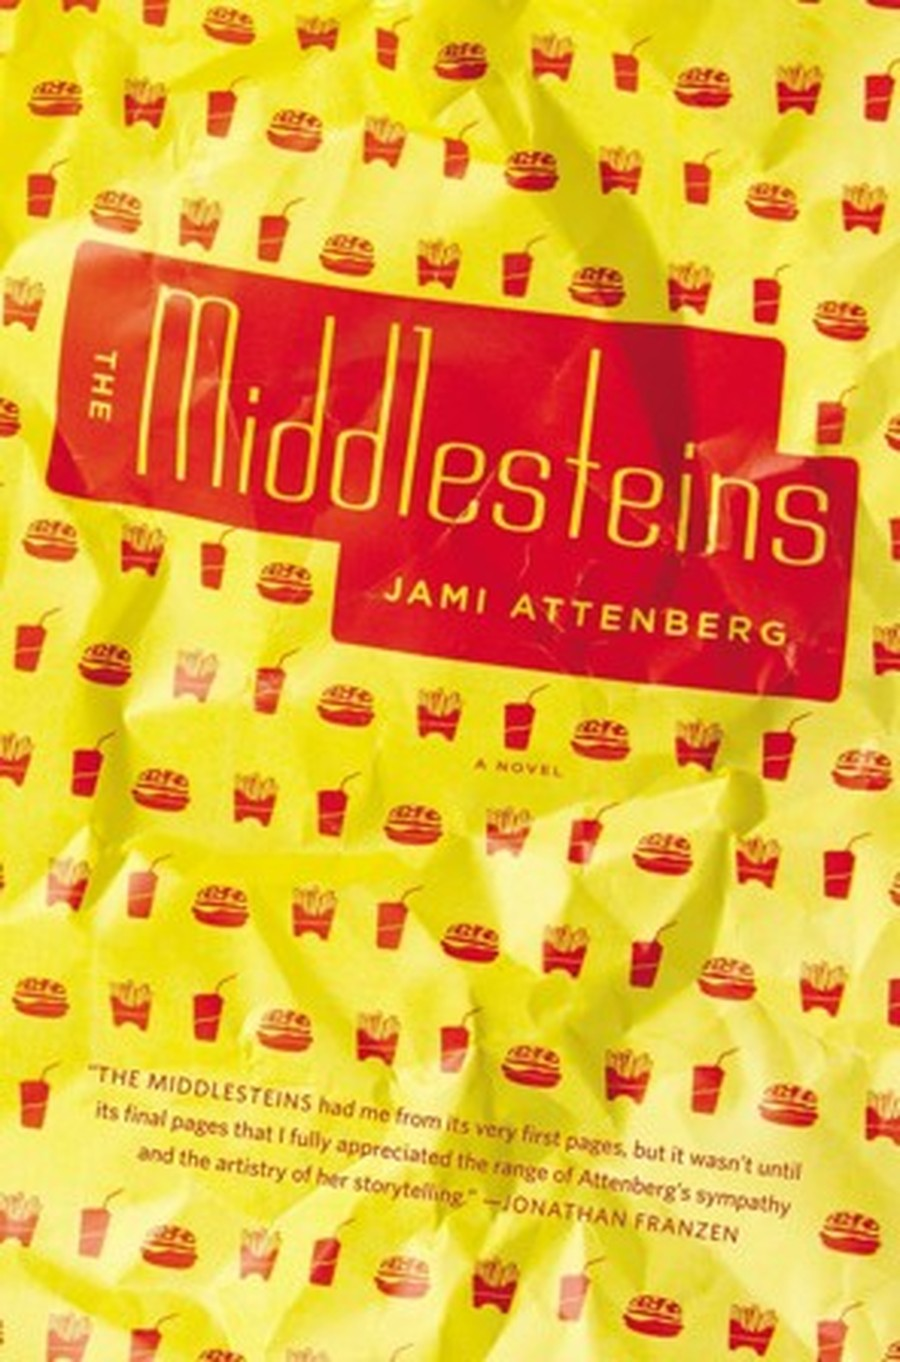 Jami Attenberg's new novel The Middlesteins involves Jews, jokes, hamburgers, and fries.